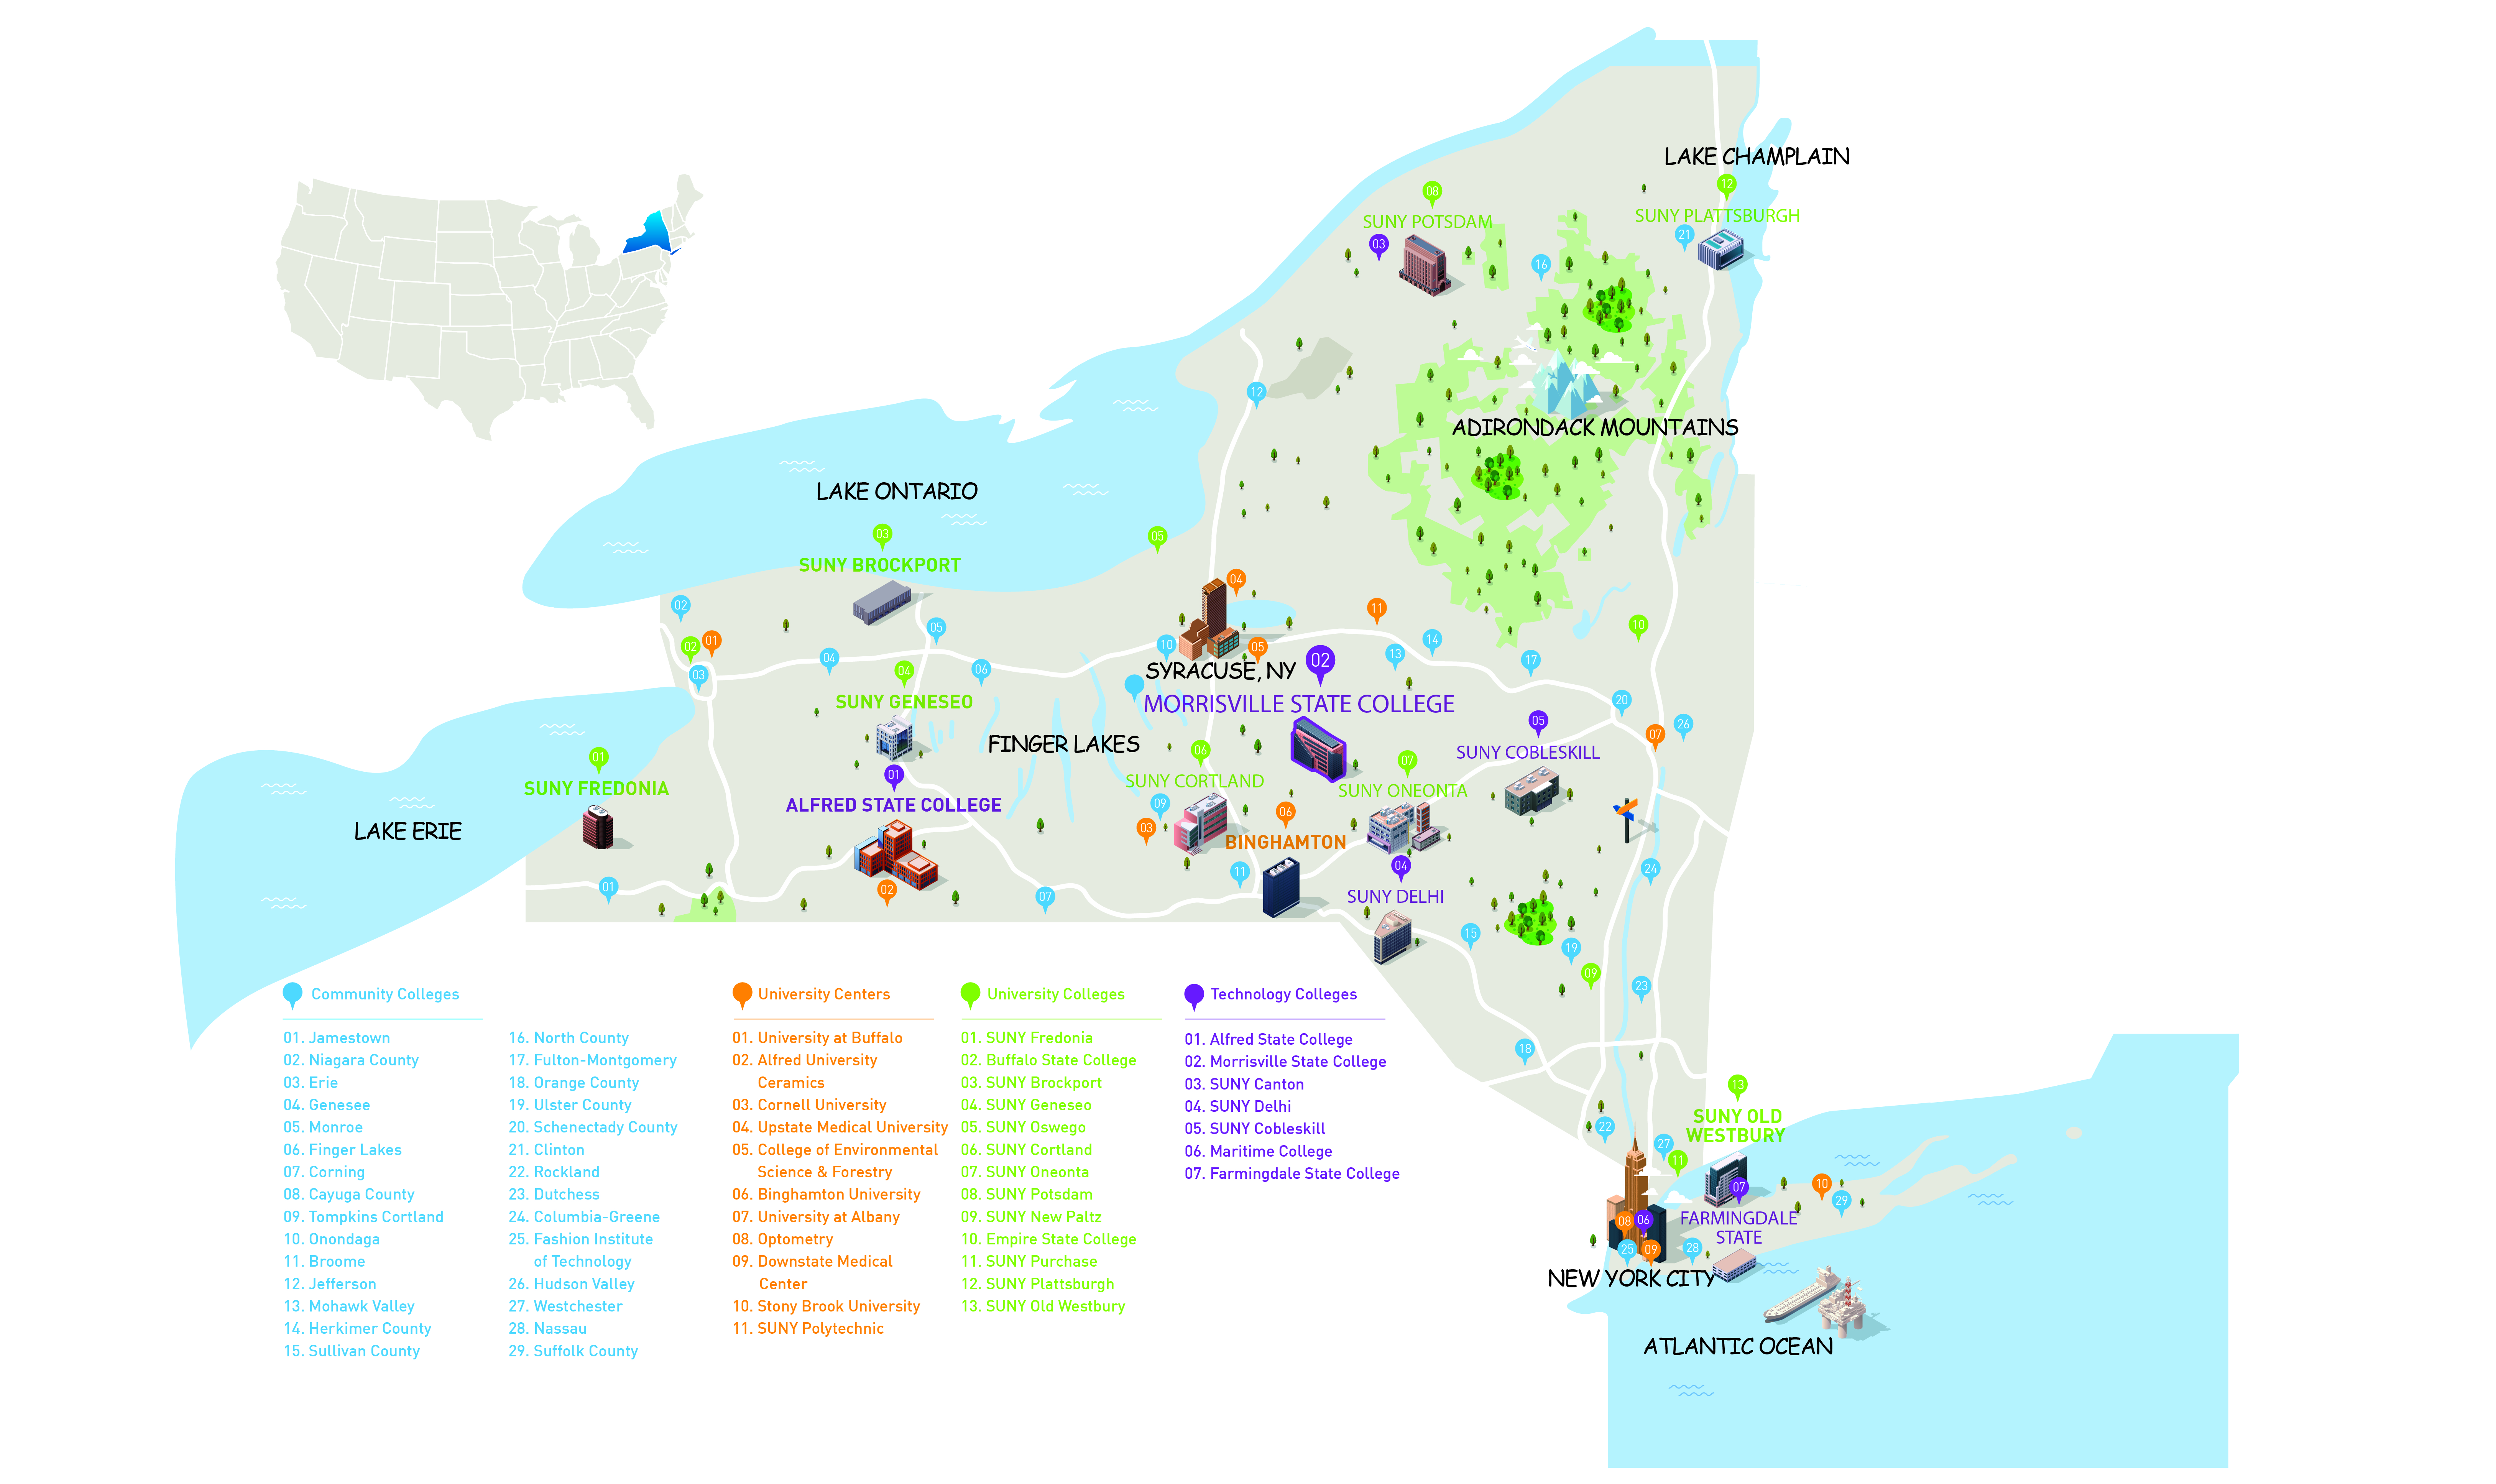 schools in the suny system include. interested in another school outside of suny your university